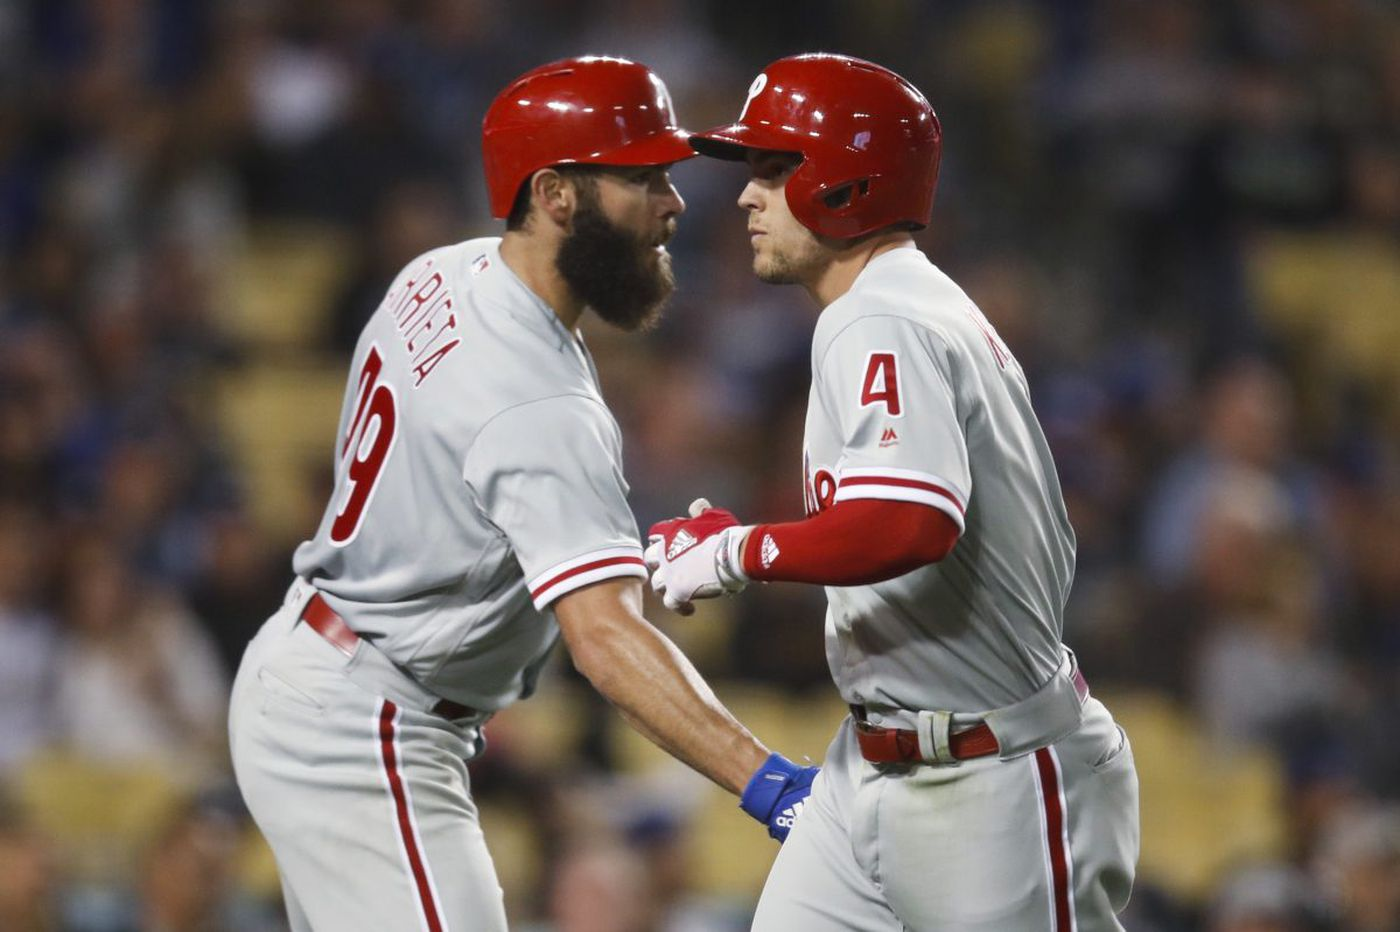 It's all about pitching as Jake Arrieta, Phillies keep rolling | Extra Innings